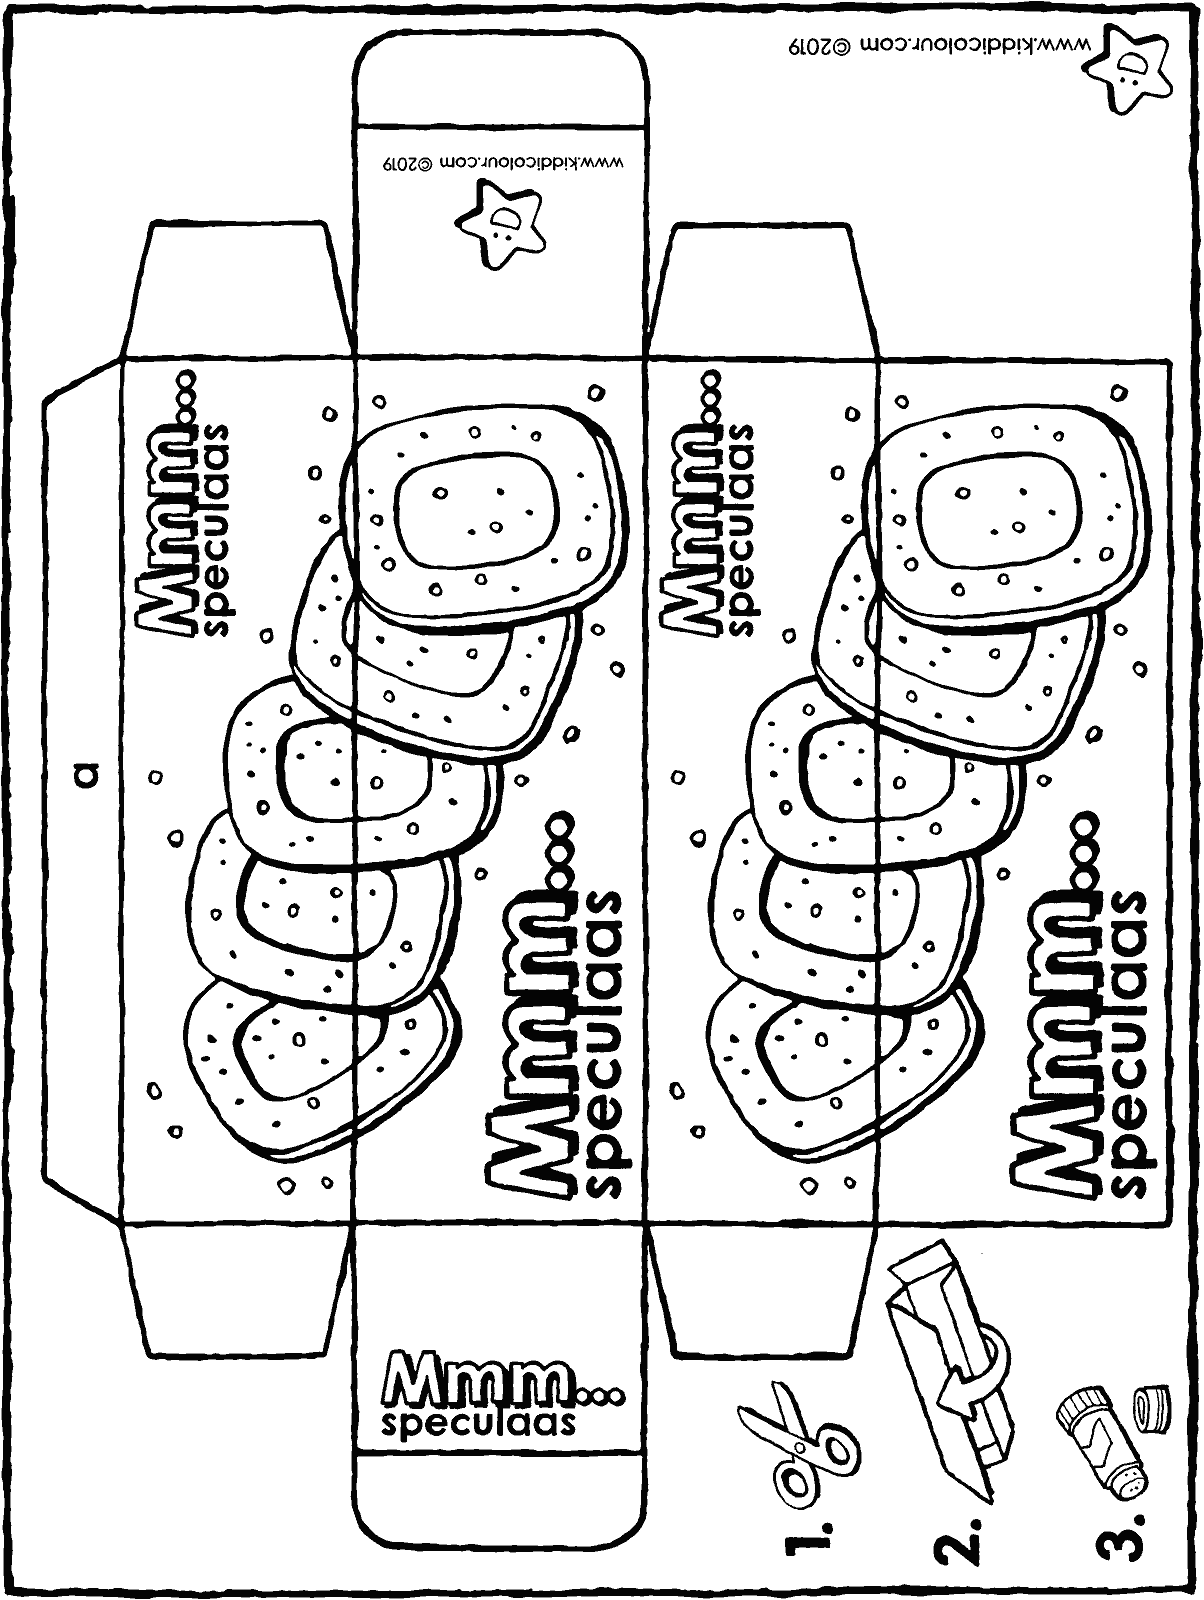 make your own speculaas packet colouring page drawing picture 01H